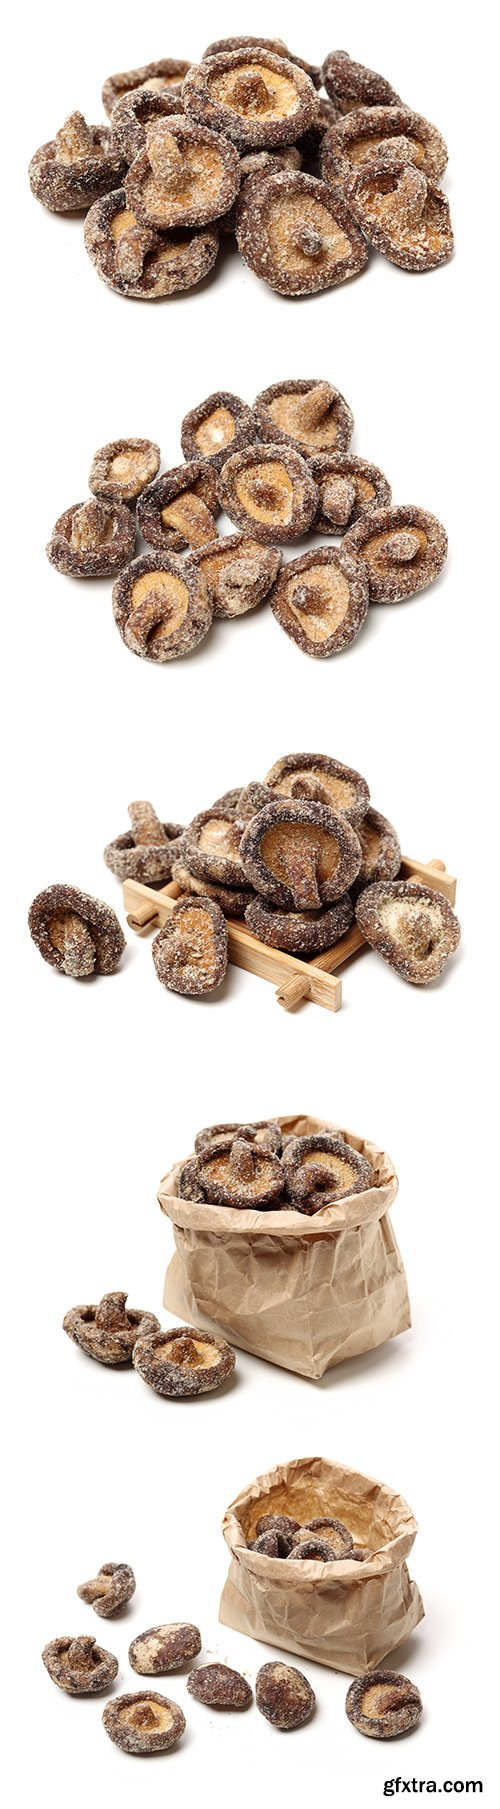 Dry Mushrooms Isolated - 5xJPGs